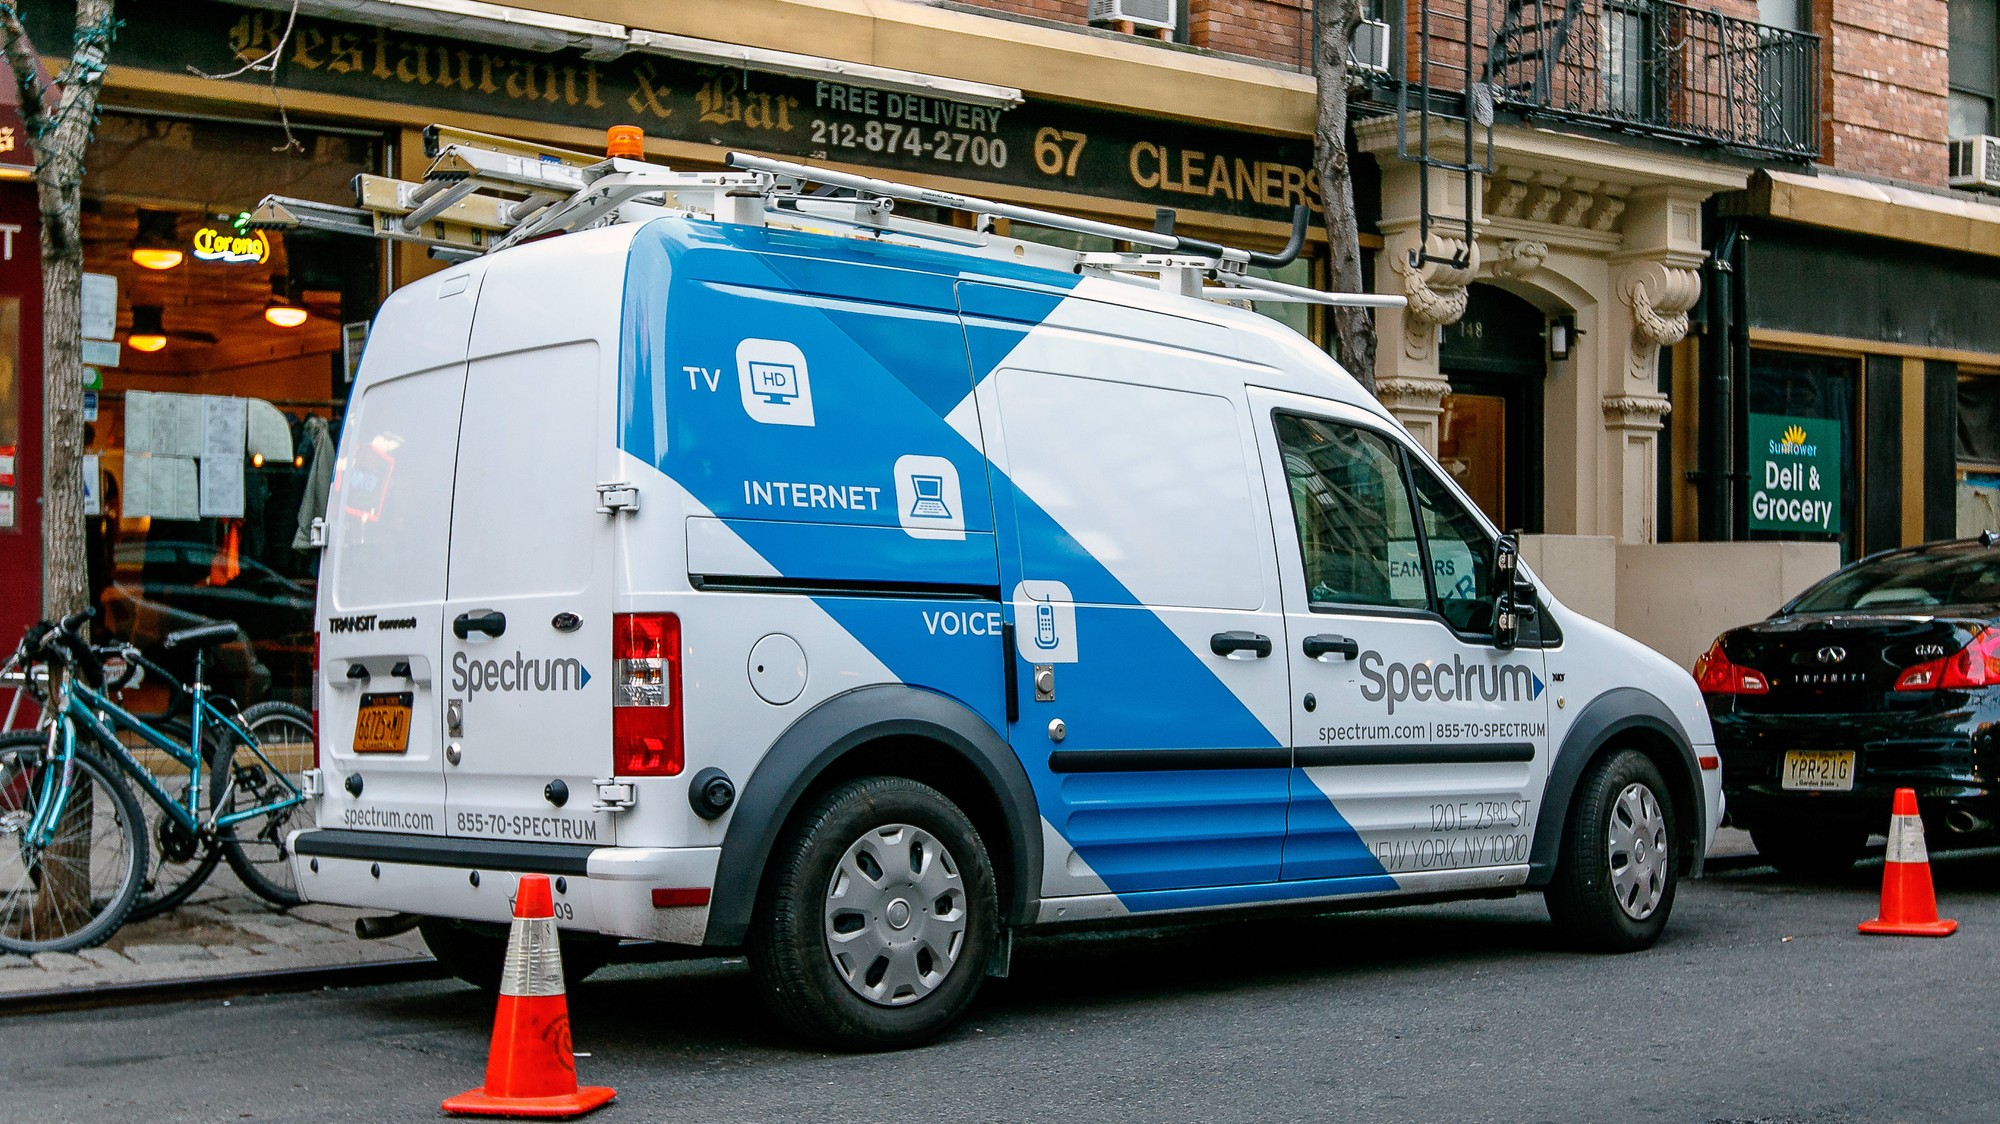 Why New York Kicked the Country's Second-Biggest Cable